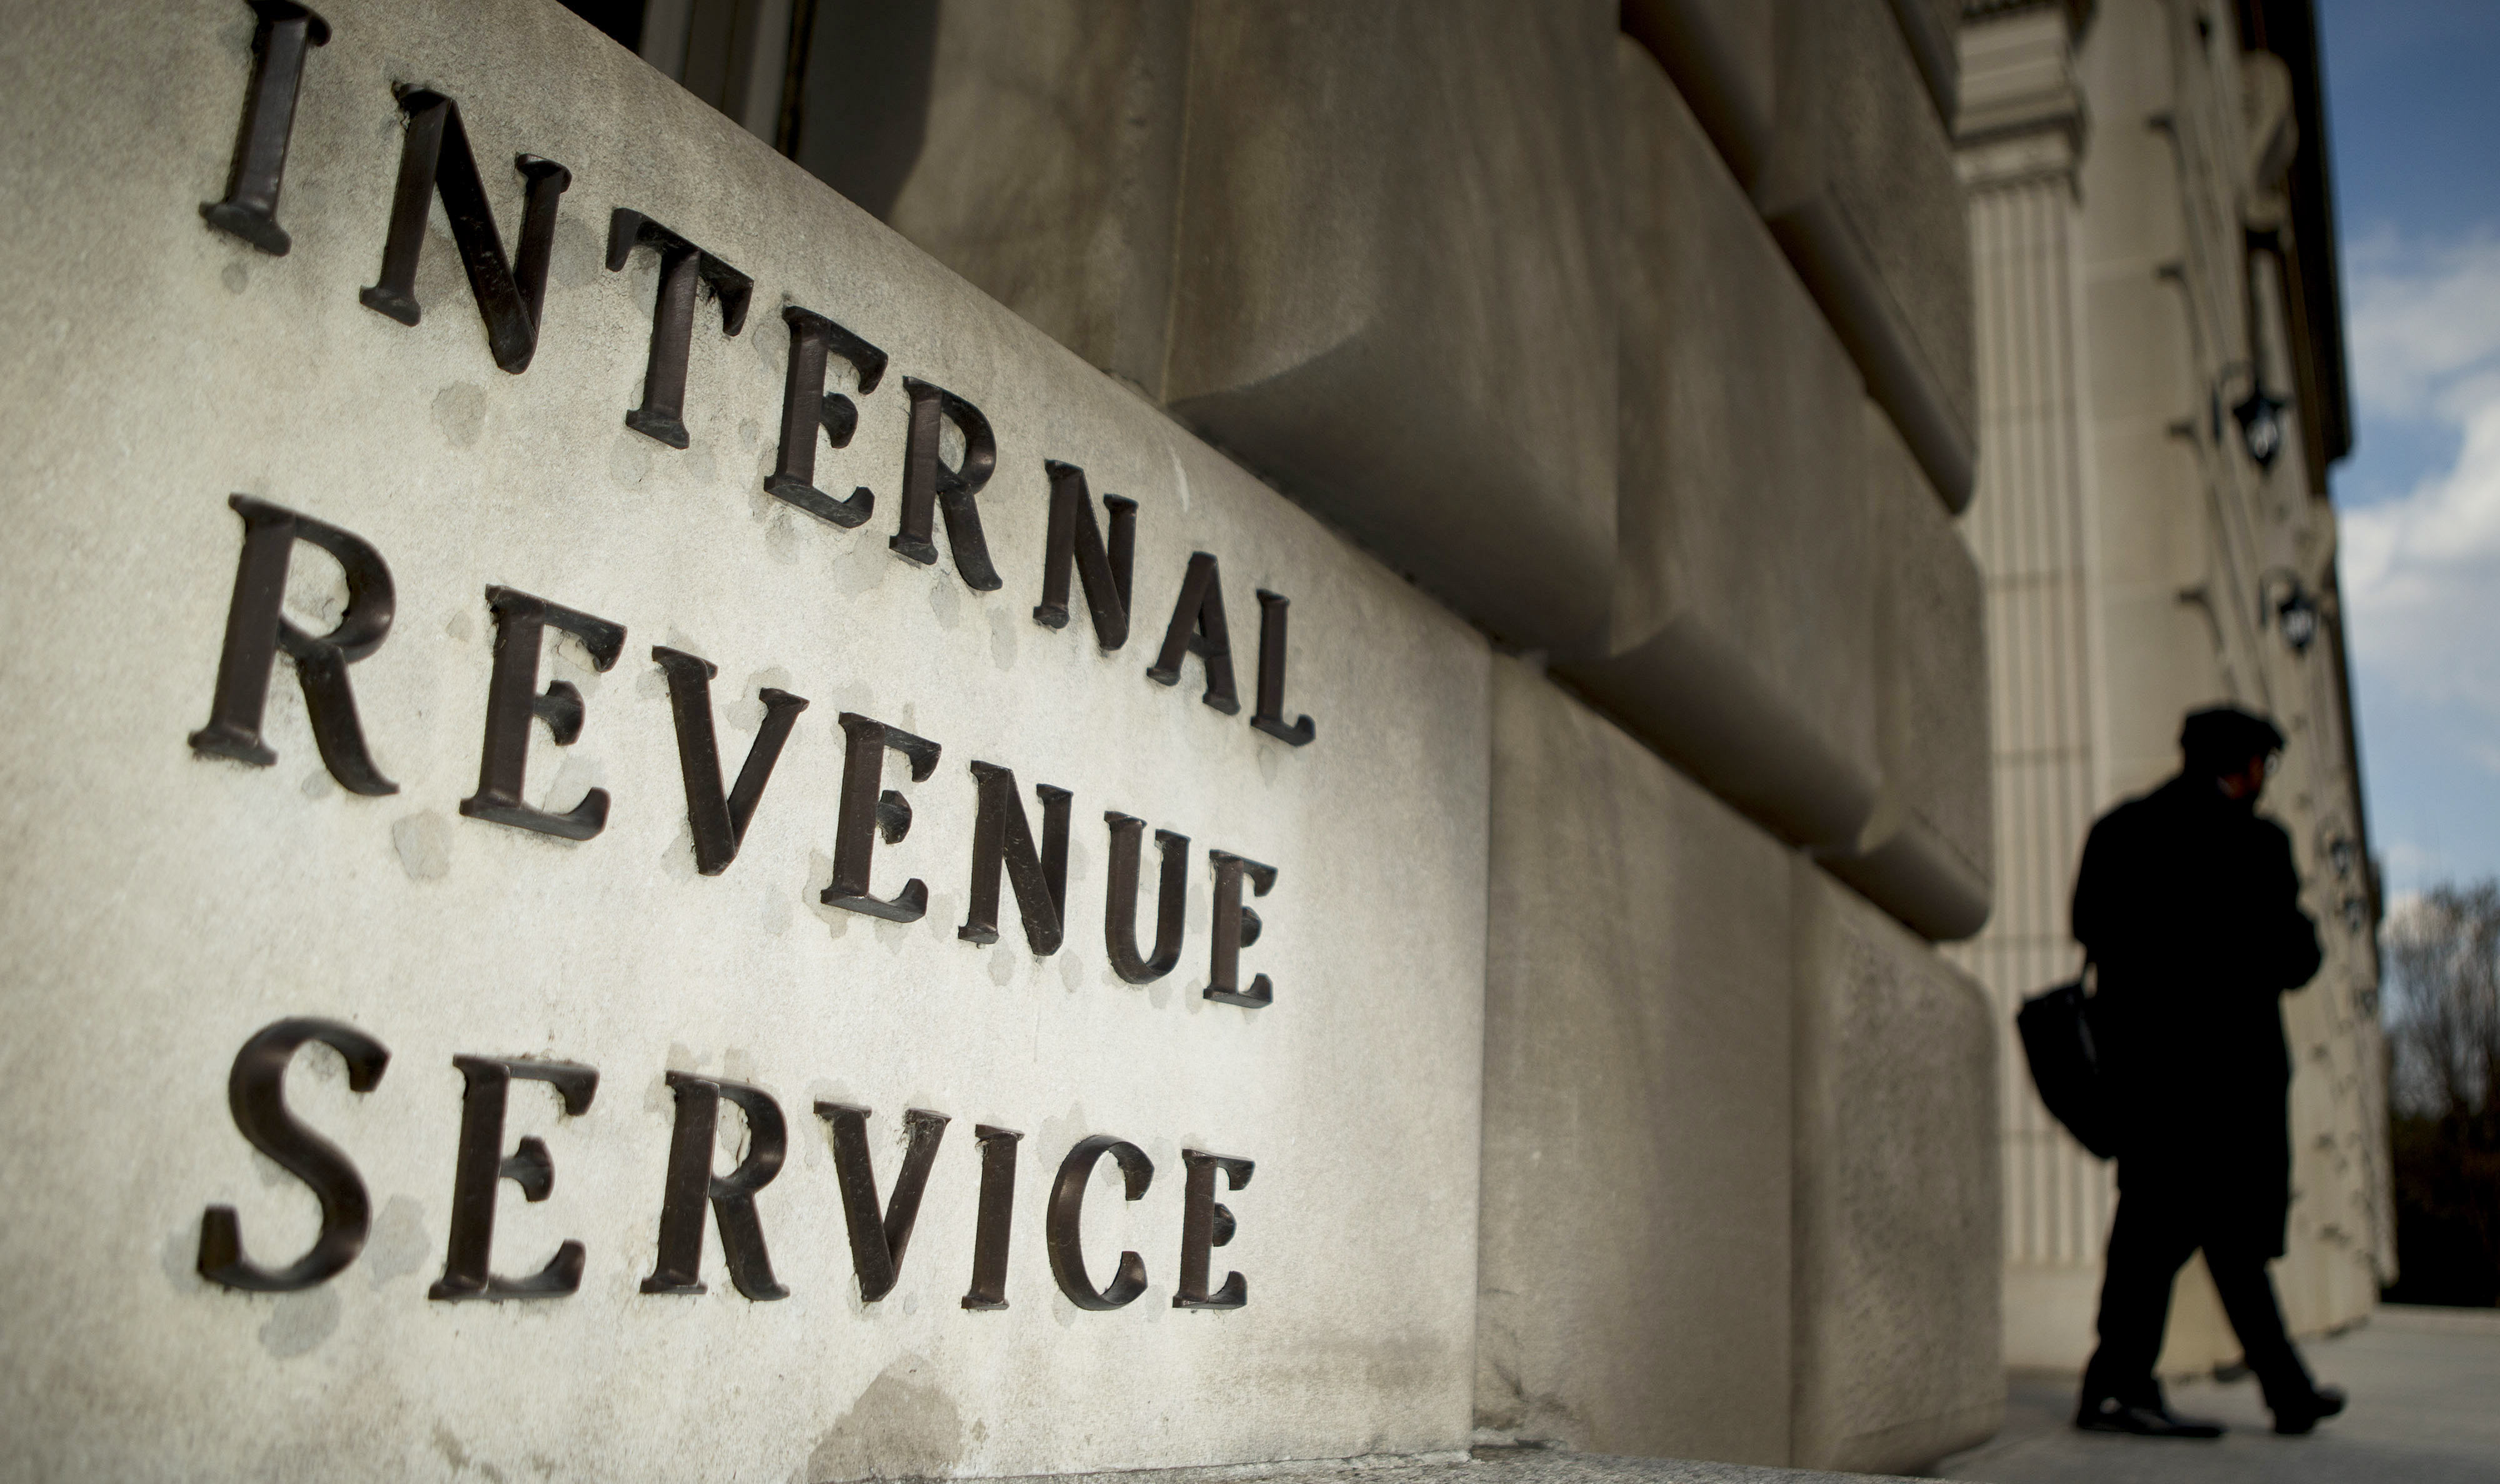 Employers rejoice irs announces filing extension for furnishing employers rejoice irs announces filing extension for furnishing 2017 forms 1095 b and 1095 c and continued good faith transition relief falaconquin